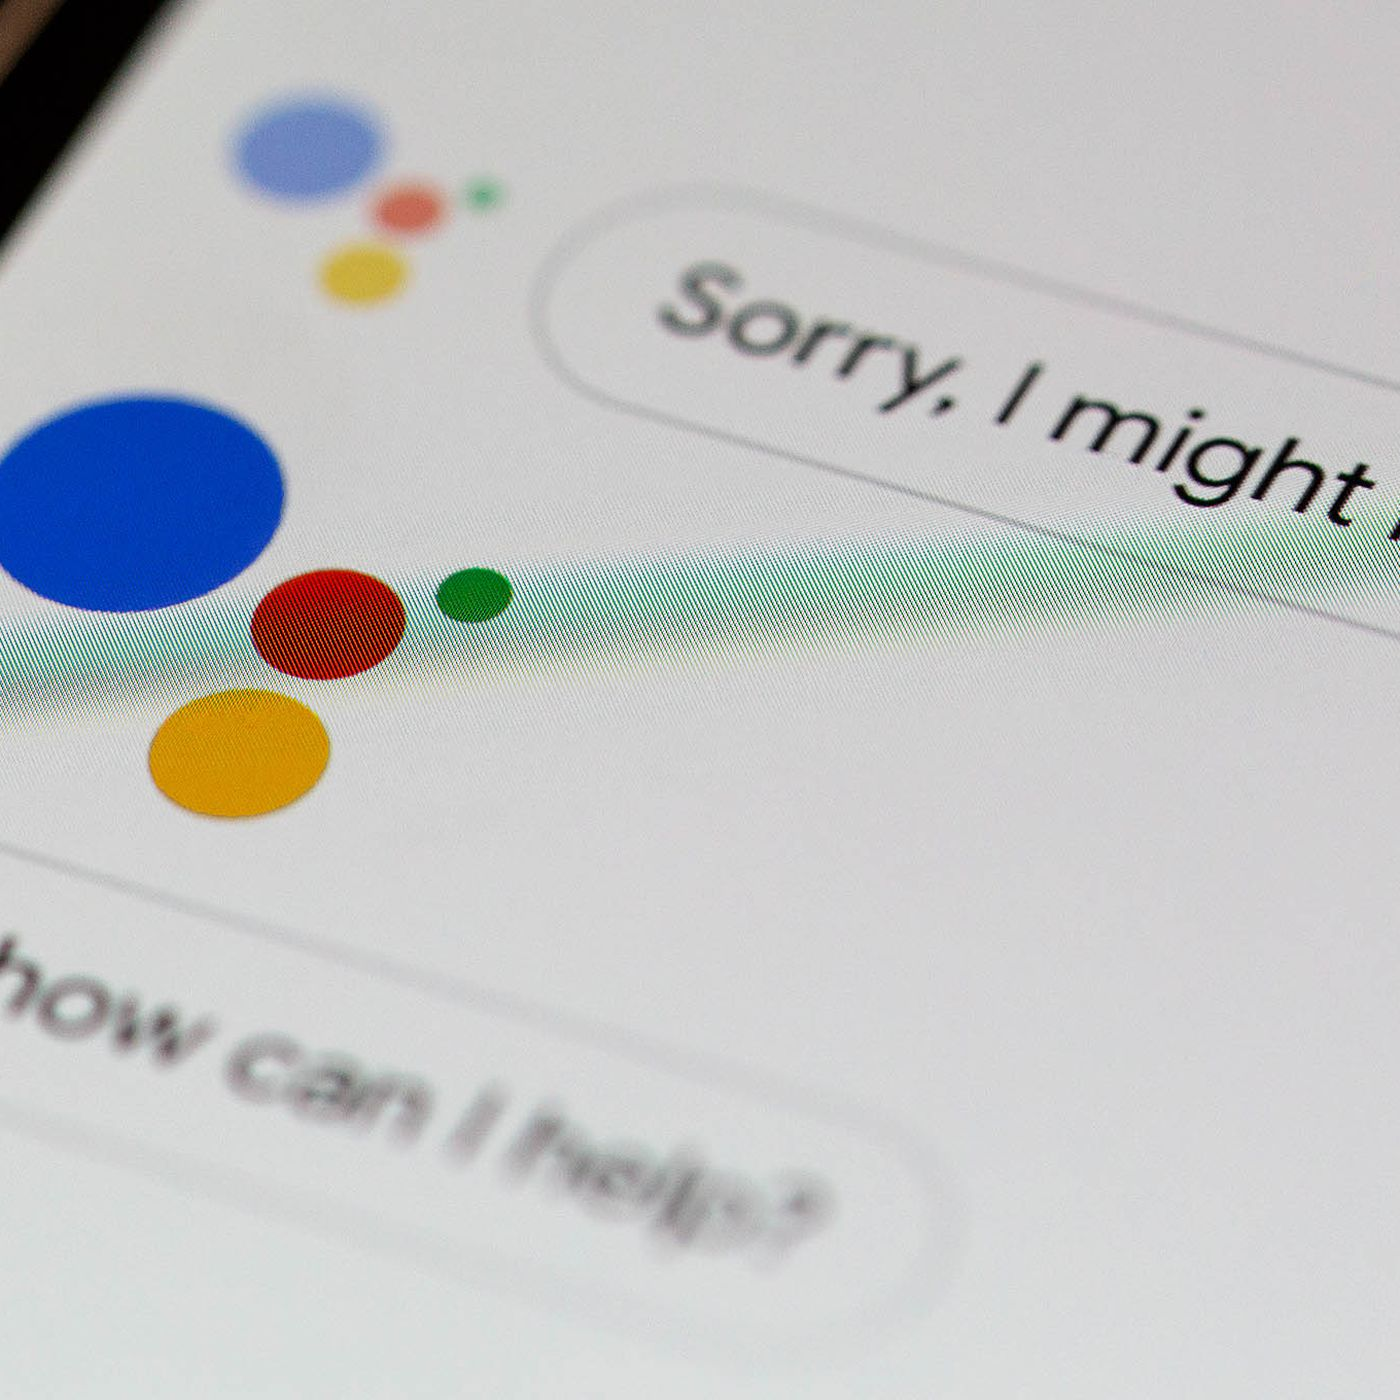 Google now refers to its different Assistant voices using